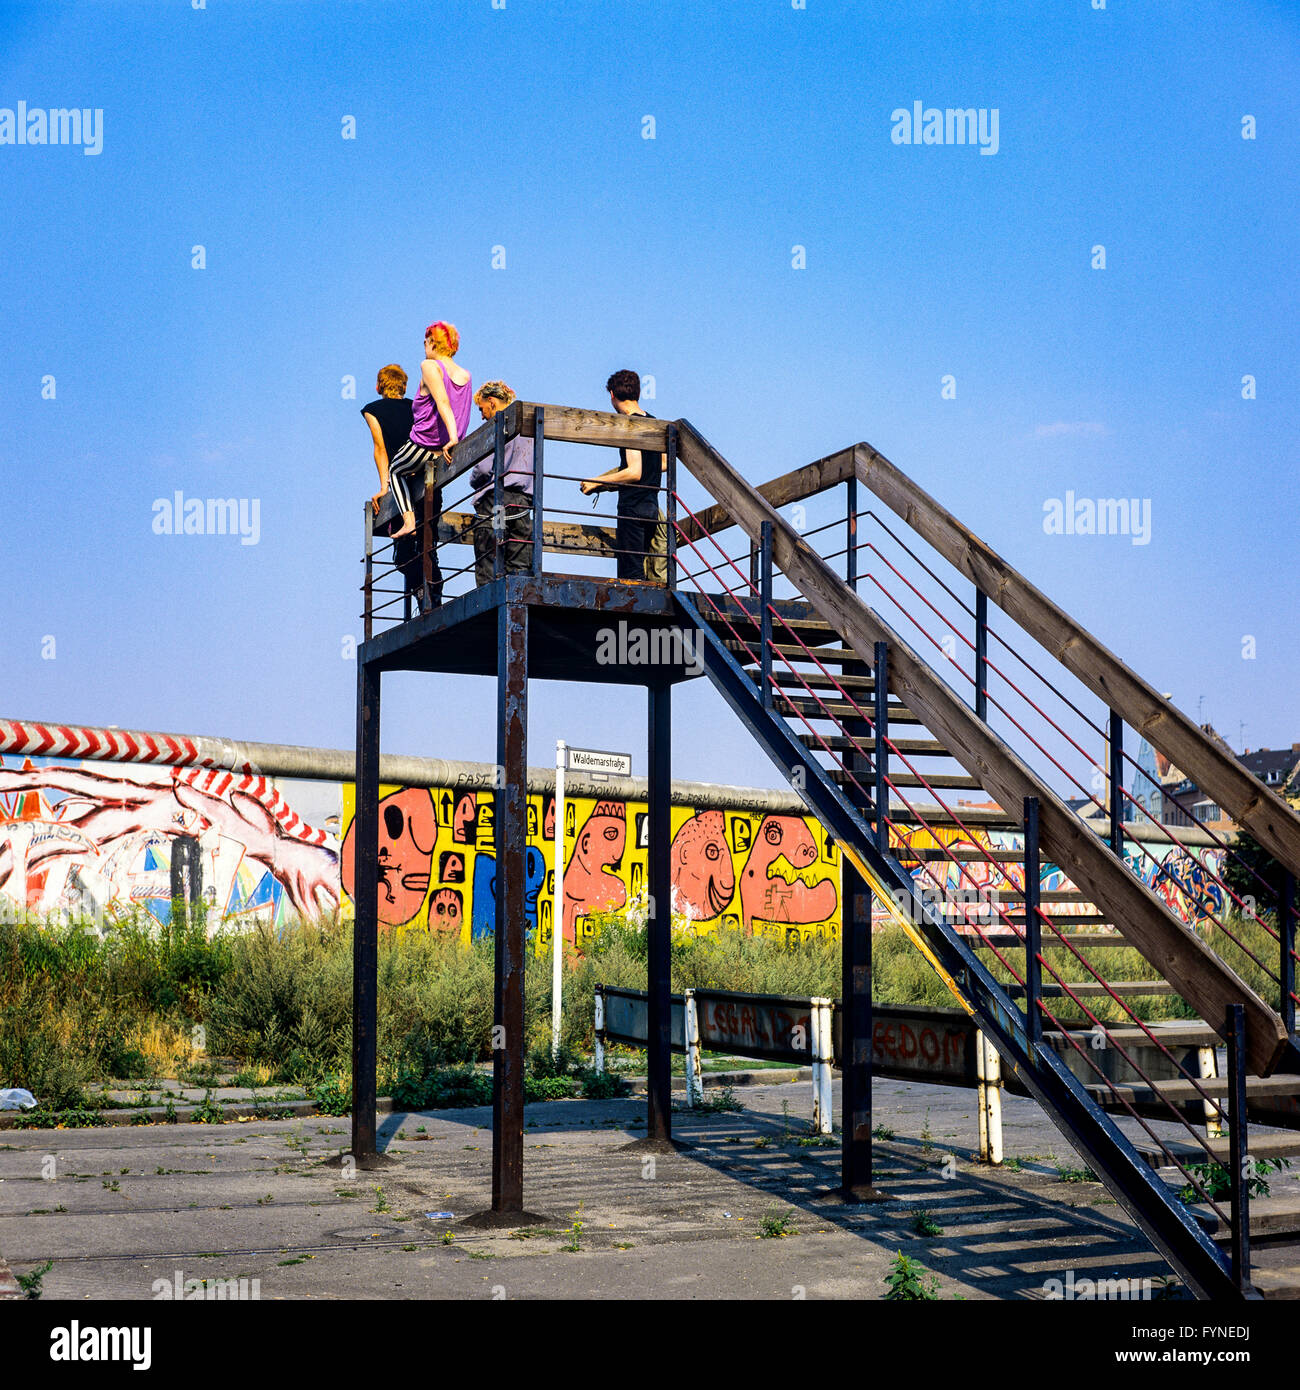 August 1986, Berlin Wall graffitis, four young people on observation platform looking over the Wall, Kreuzberg, - Stock Image